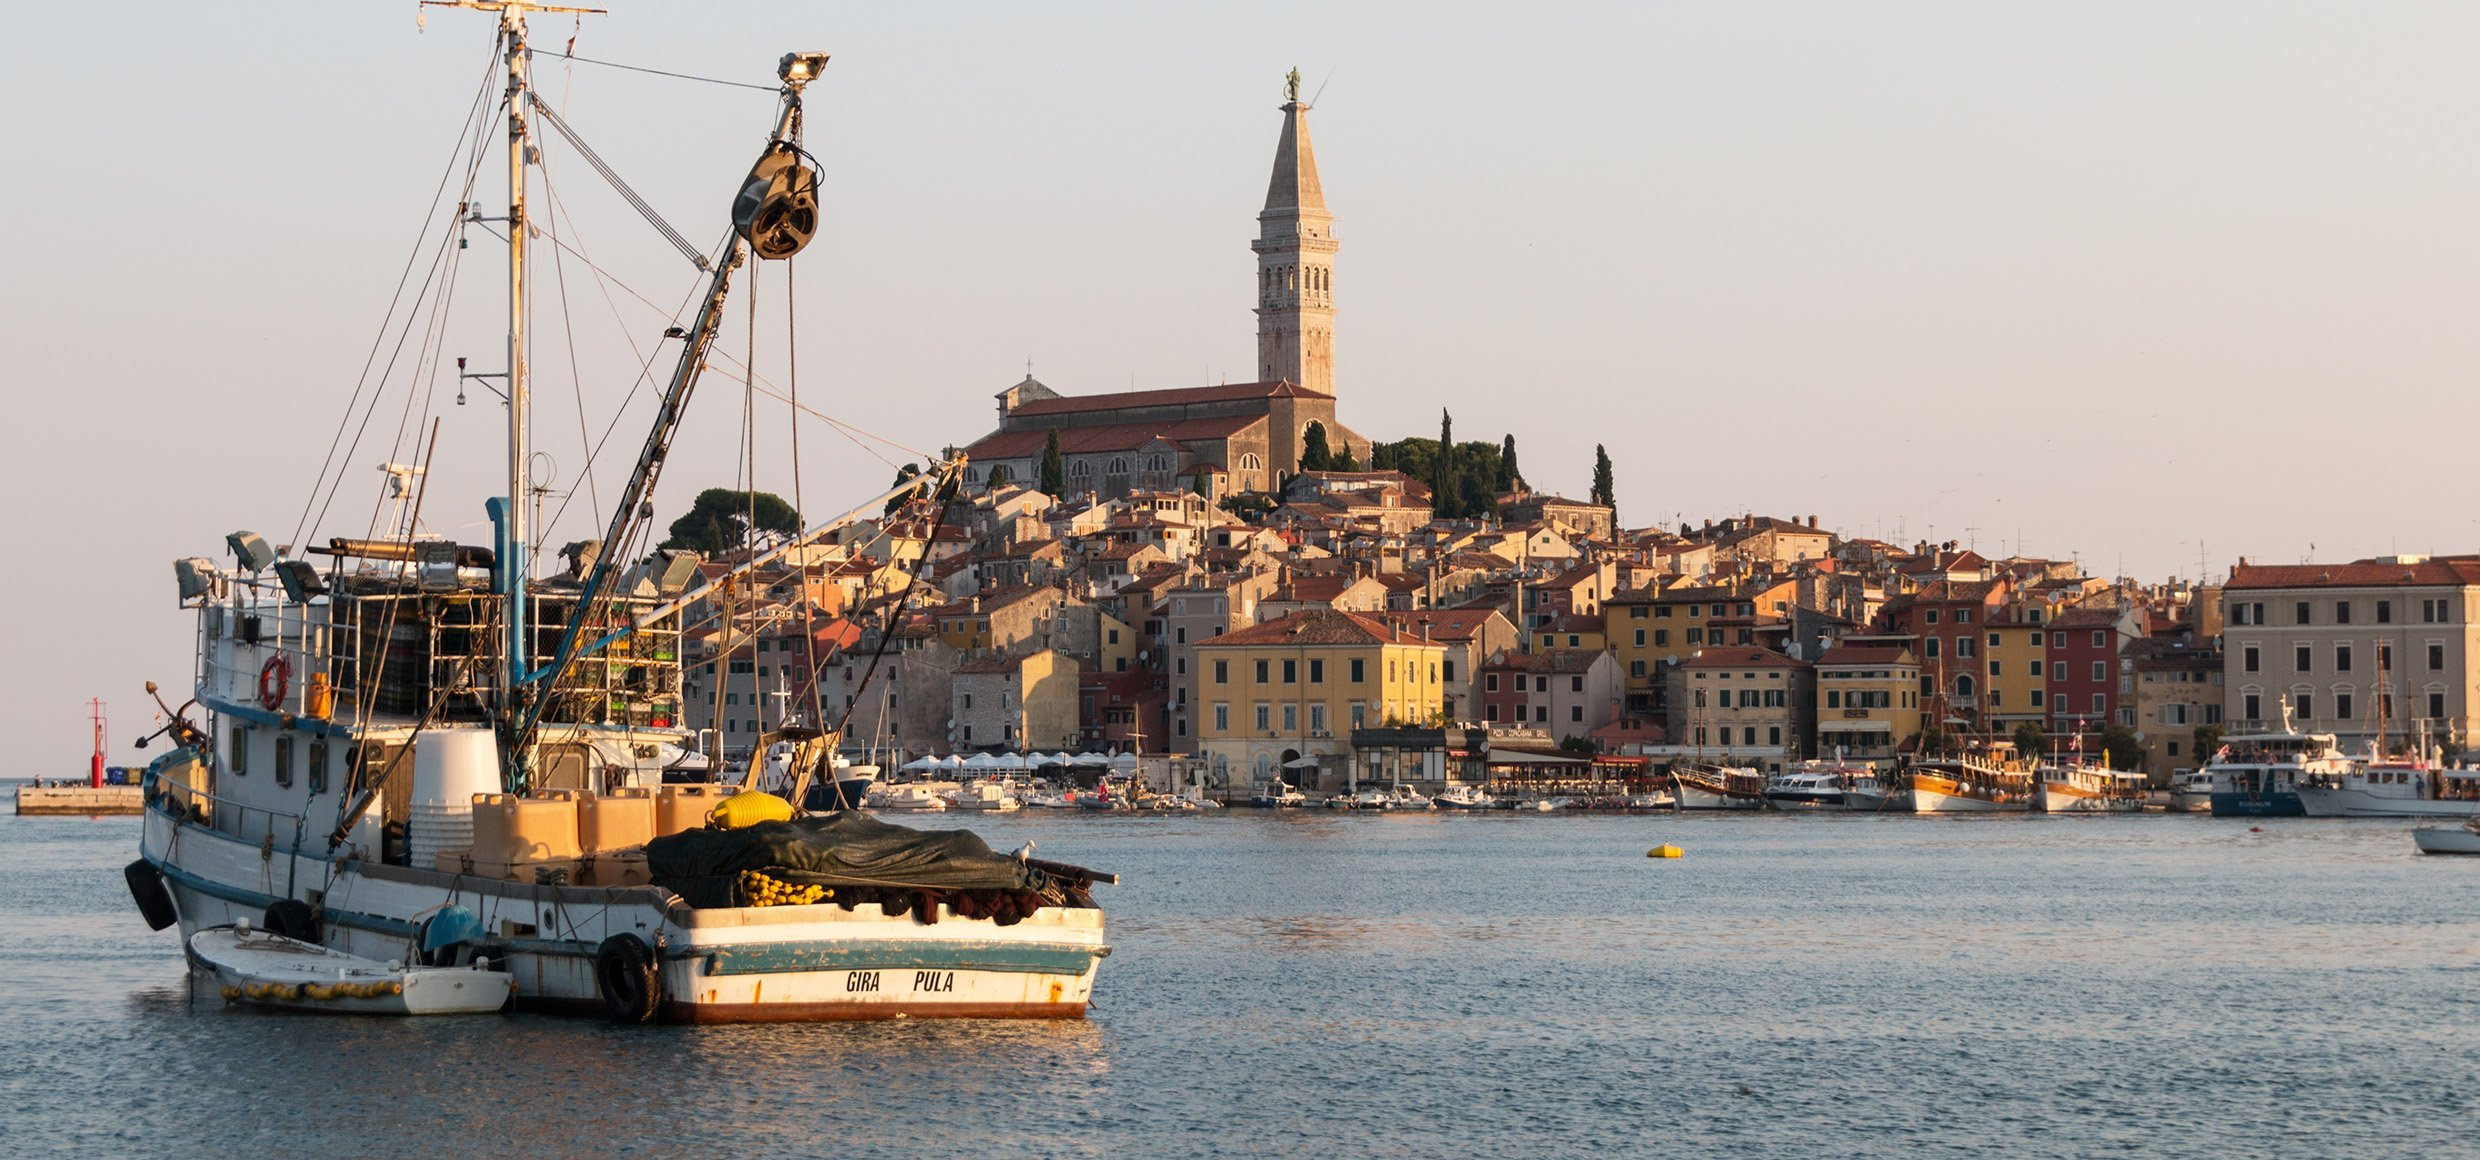 View of the old town of Rovinj by fishing boat, Croatia.